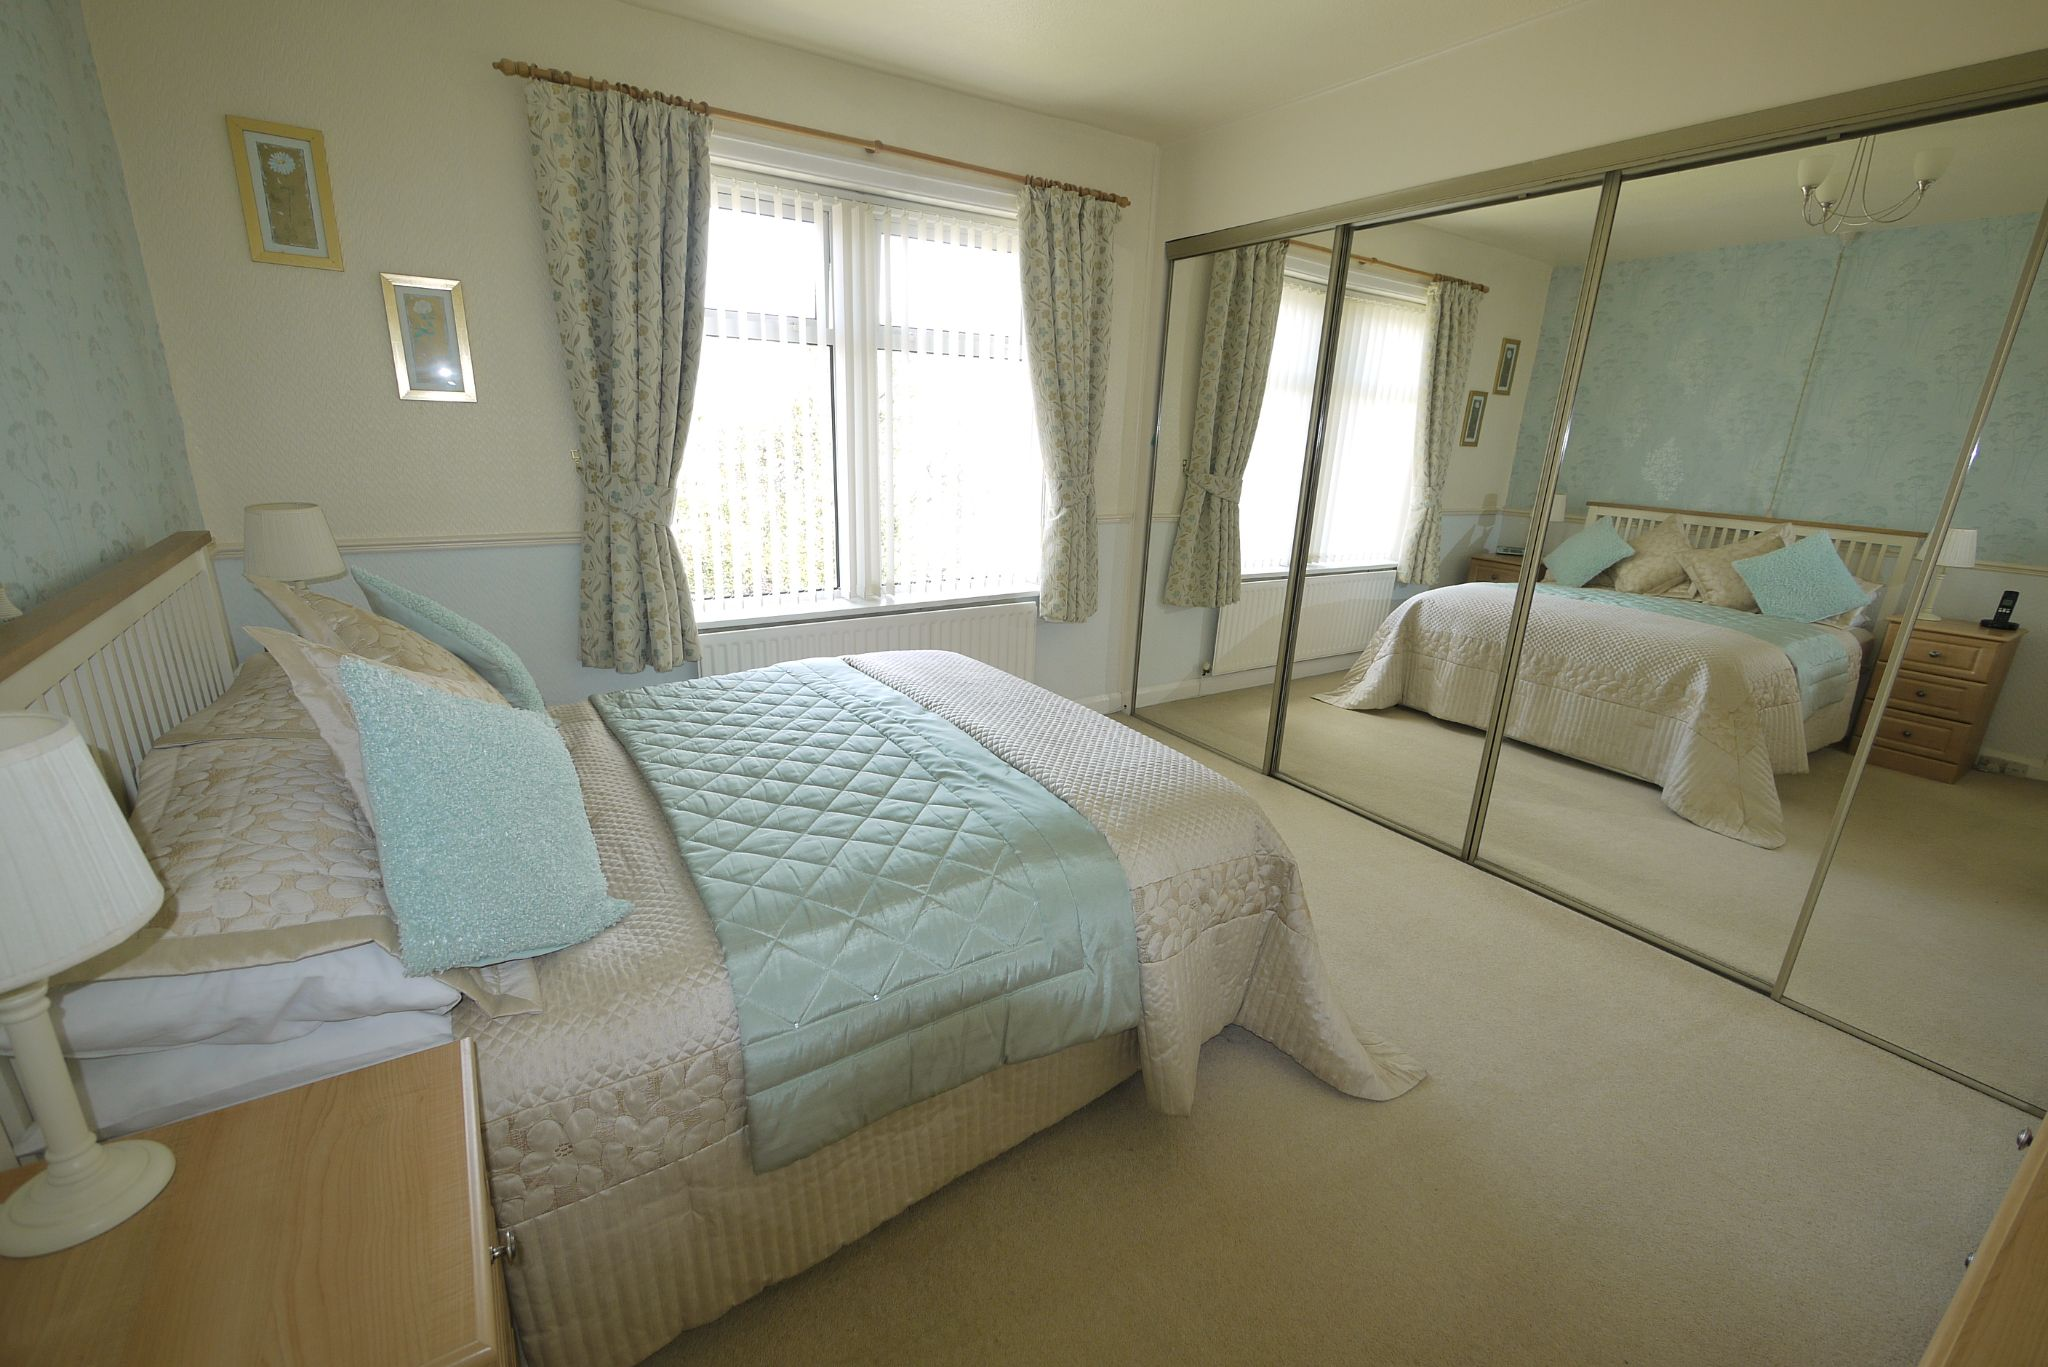 4 bedroom semi-detached house SSTC in Brighouse - Photograph 11.